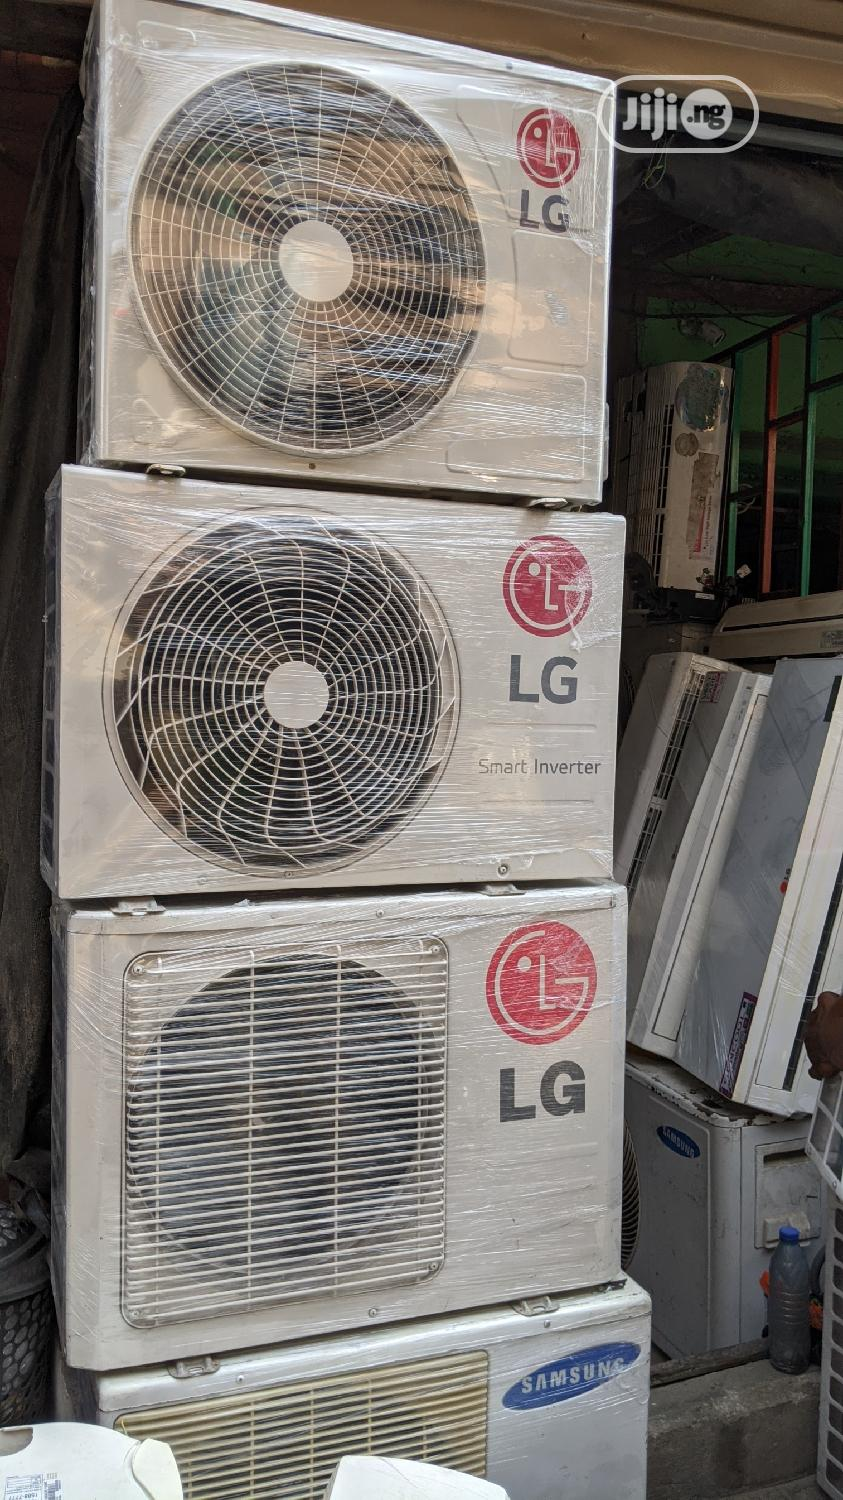 LG 1.5HP Air Conditioner   Home Appliances for sale in Ojo, Lagos State, Nigeria